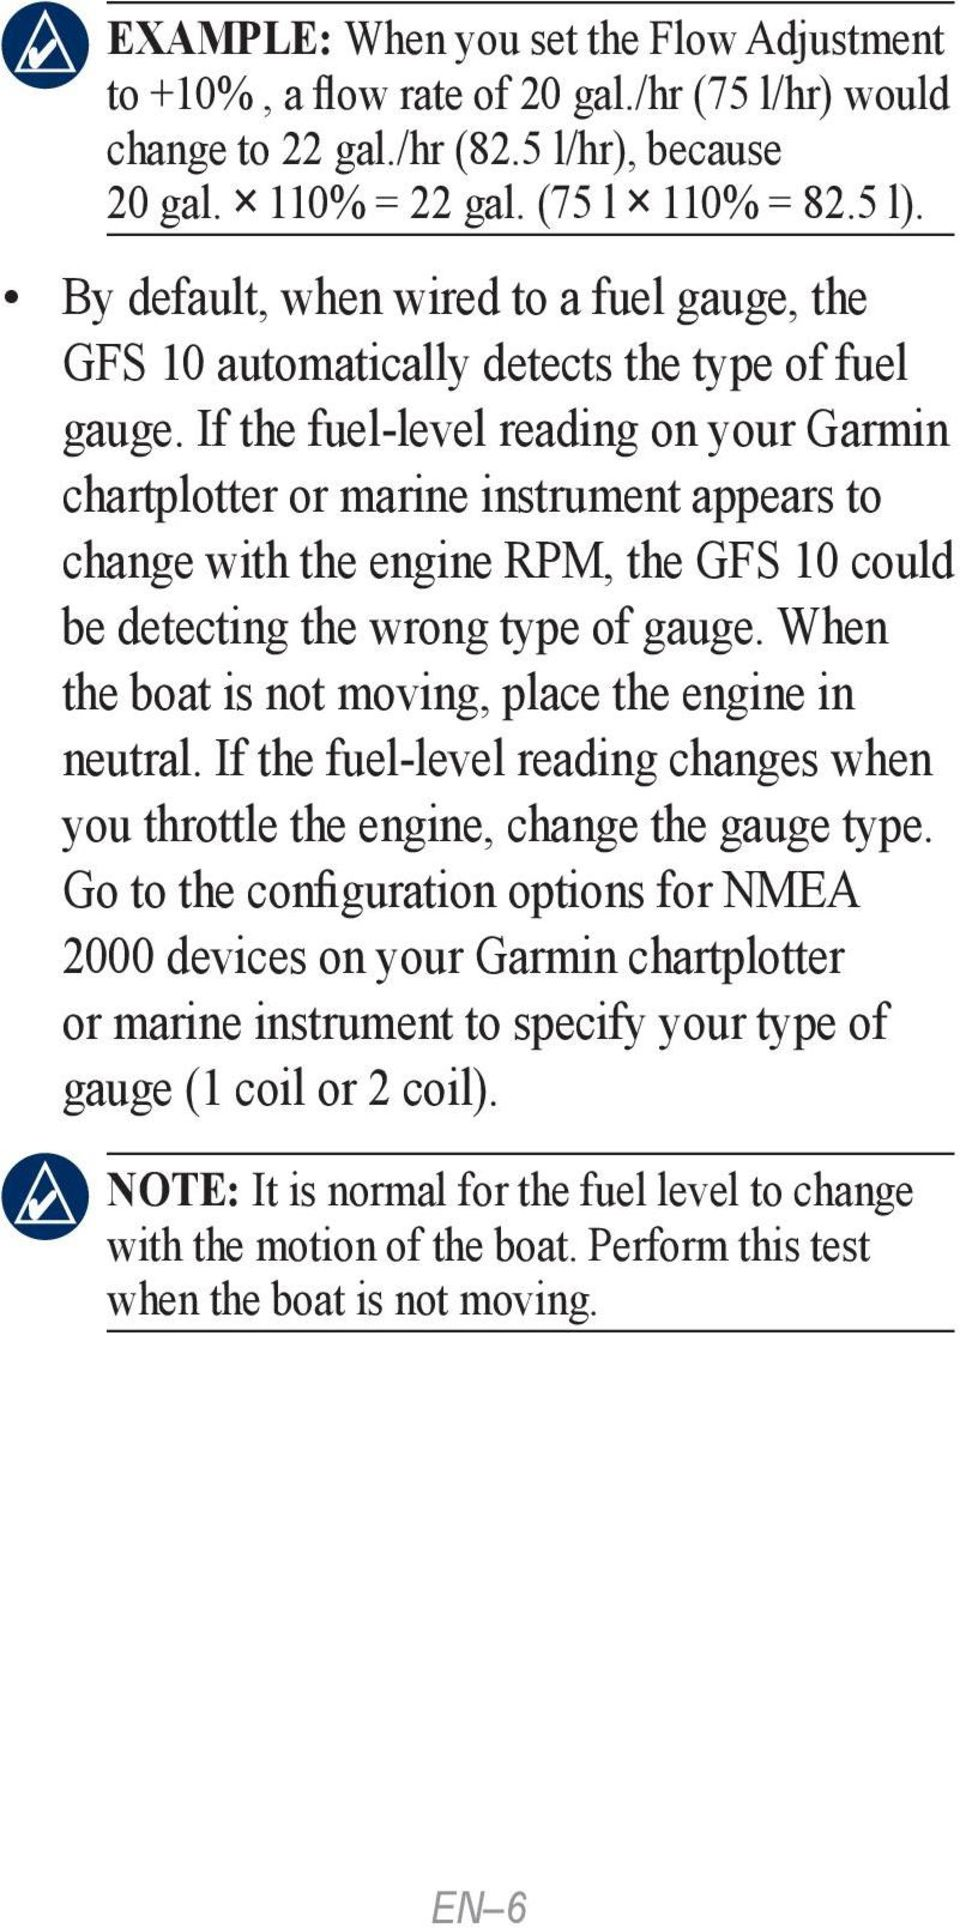 If the fuel-level reading on your Garmin chartplotter or marine instrument appears to change with the engine RPM, the GFS 10 could be detecting the wrong type of gauge.